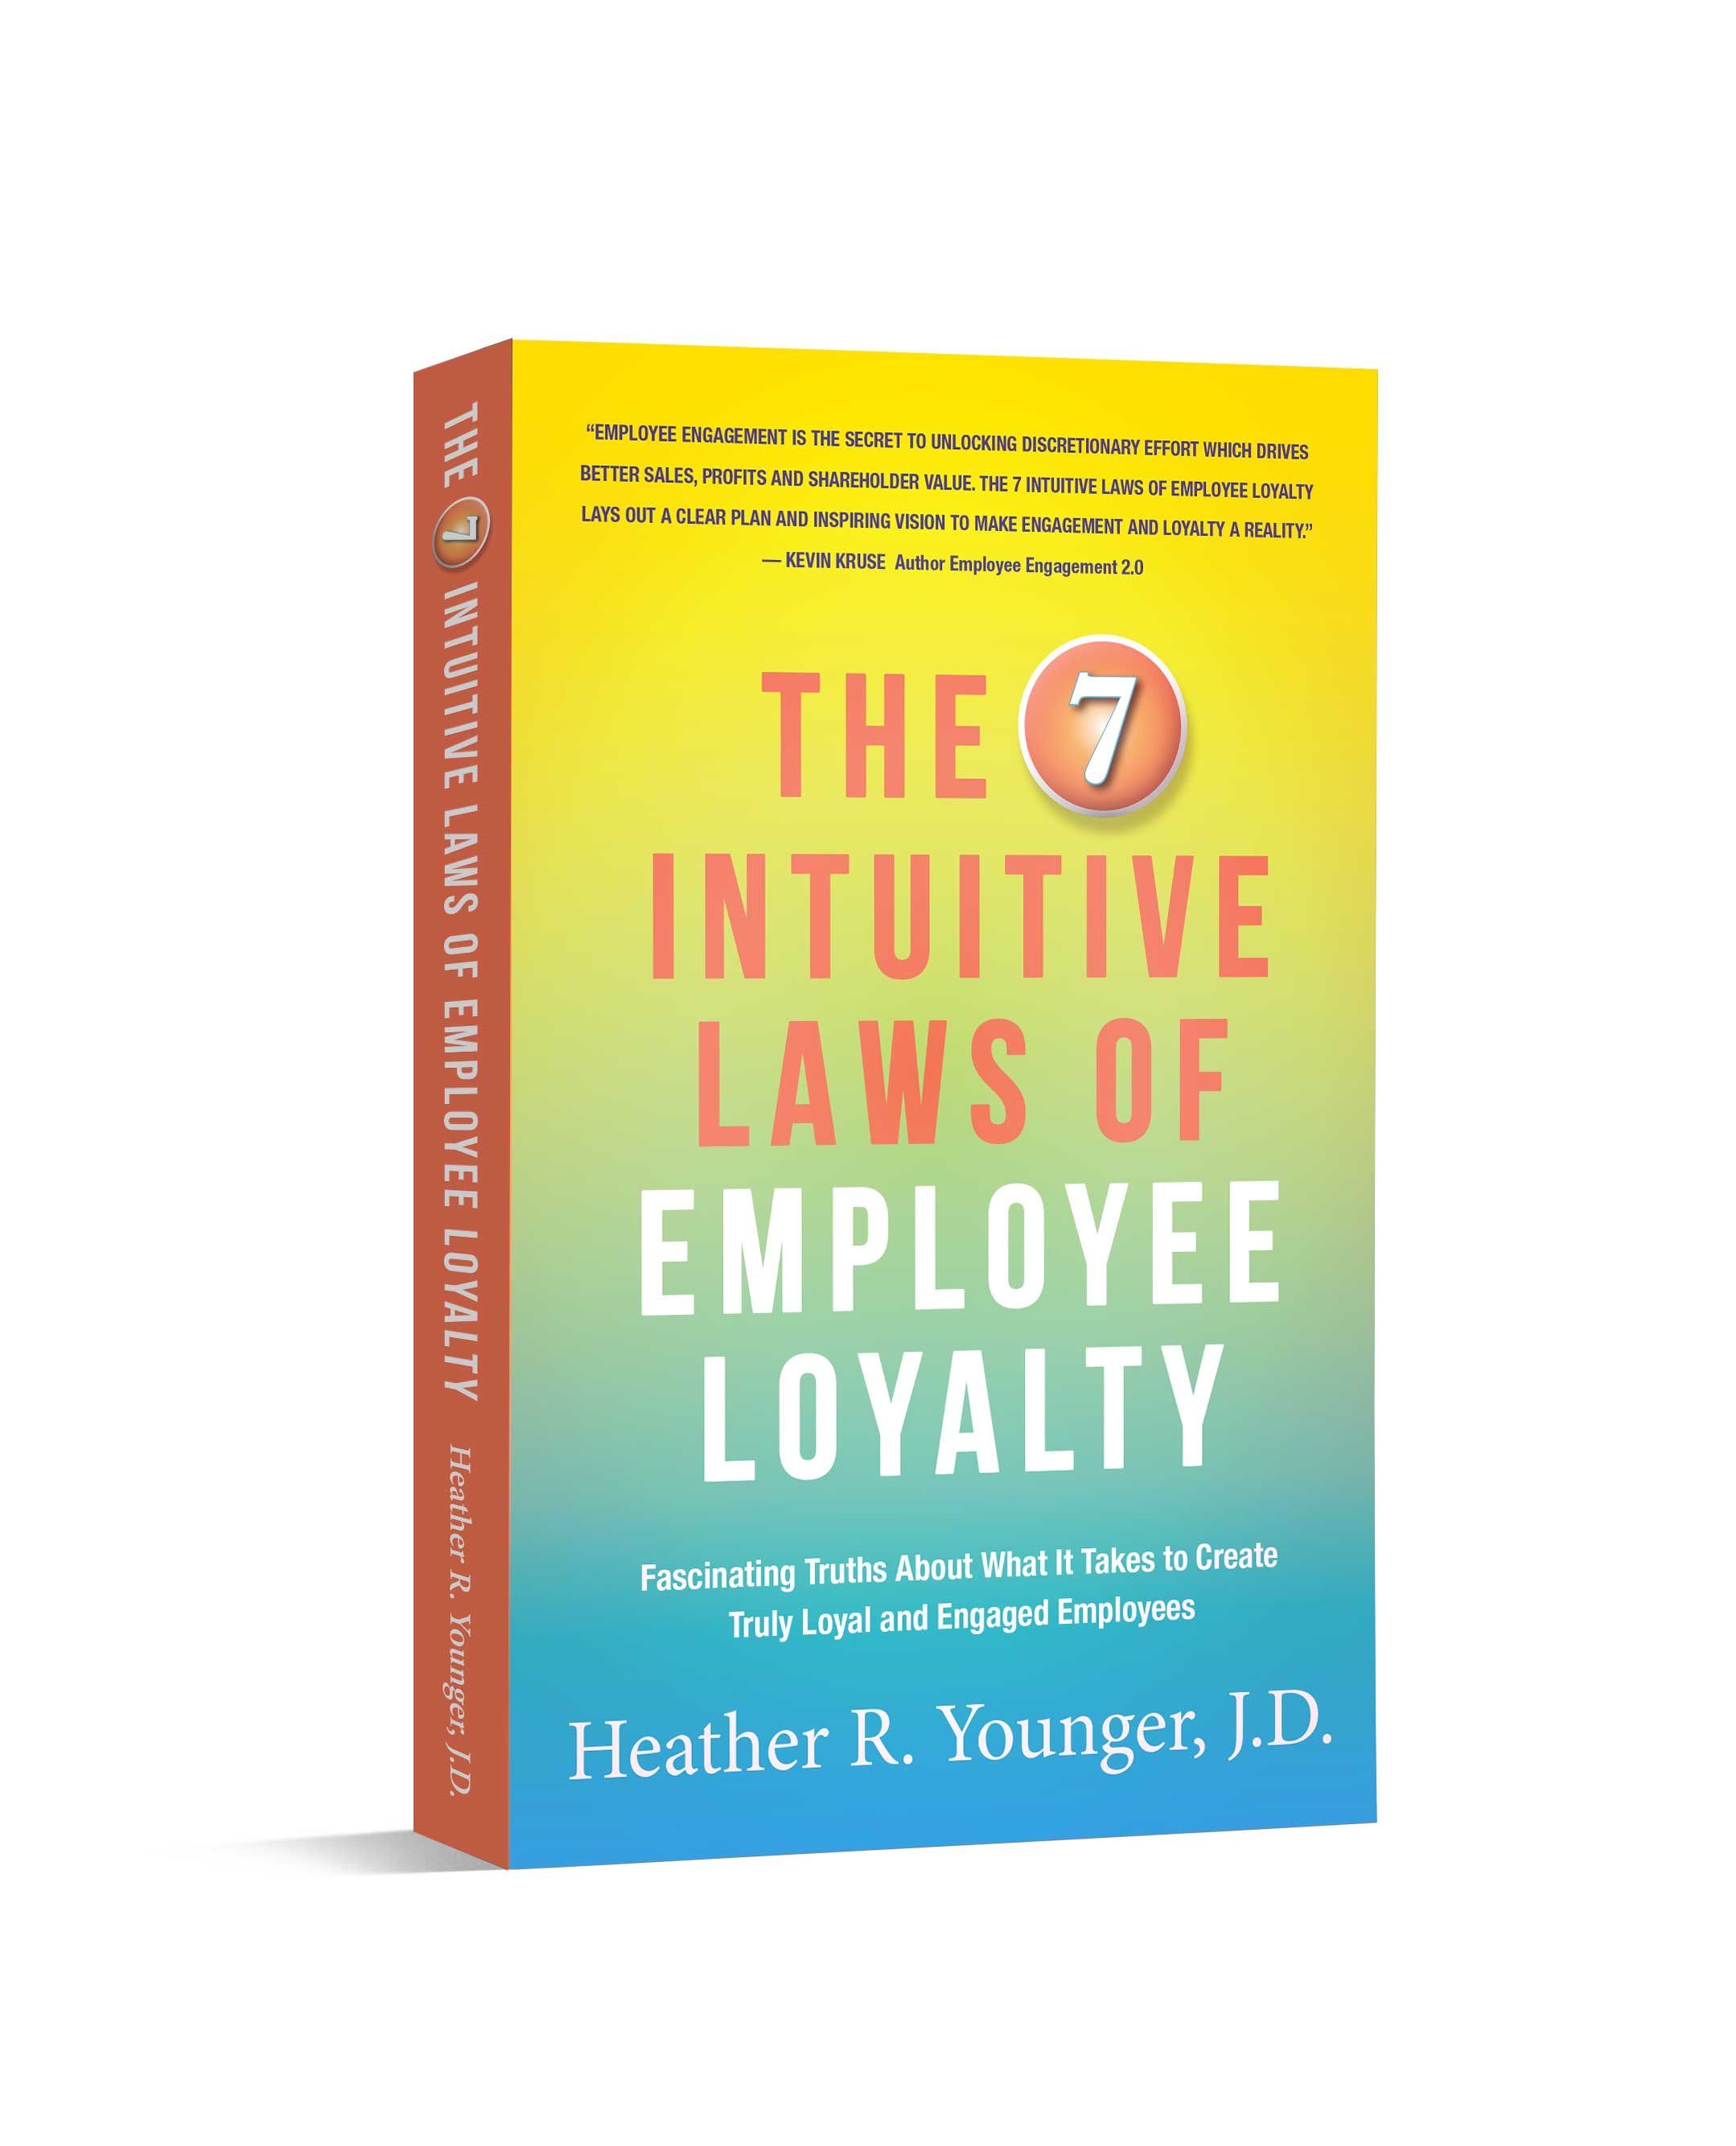 the 7 intuitive laws of employee loyalty fascinating truths about what it takes to create truly loyal and engaged employees